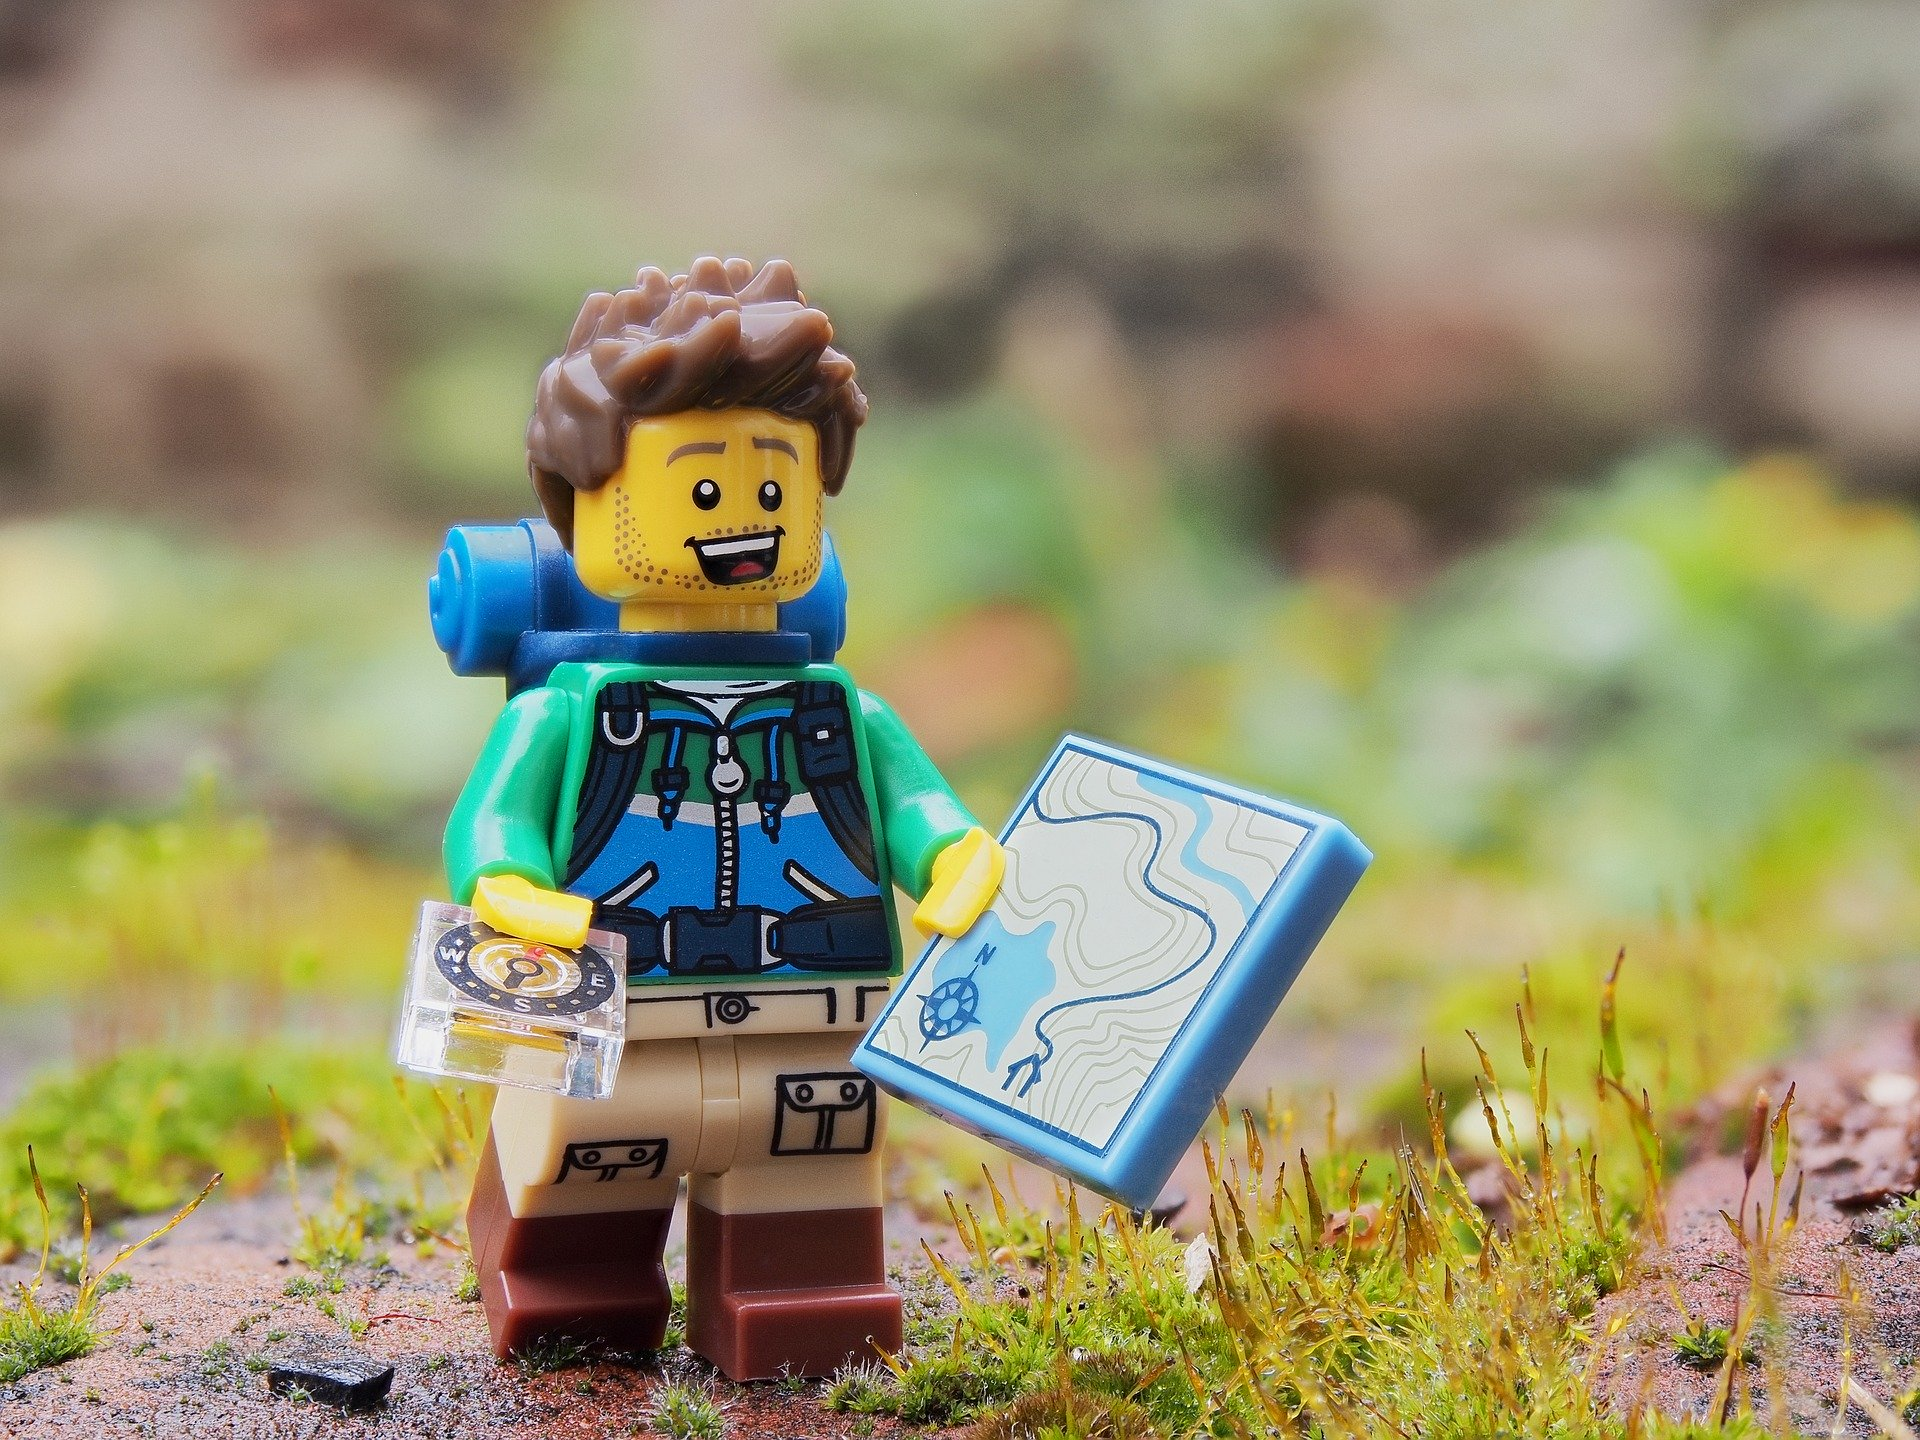 Toy person on some grass and stones, holding a map and a compass